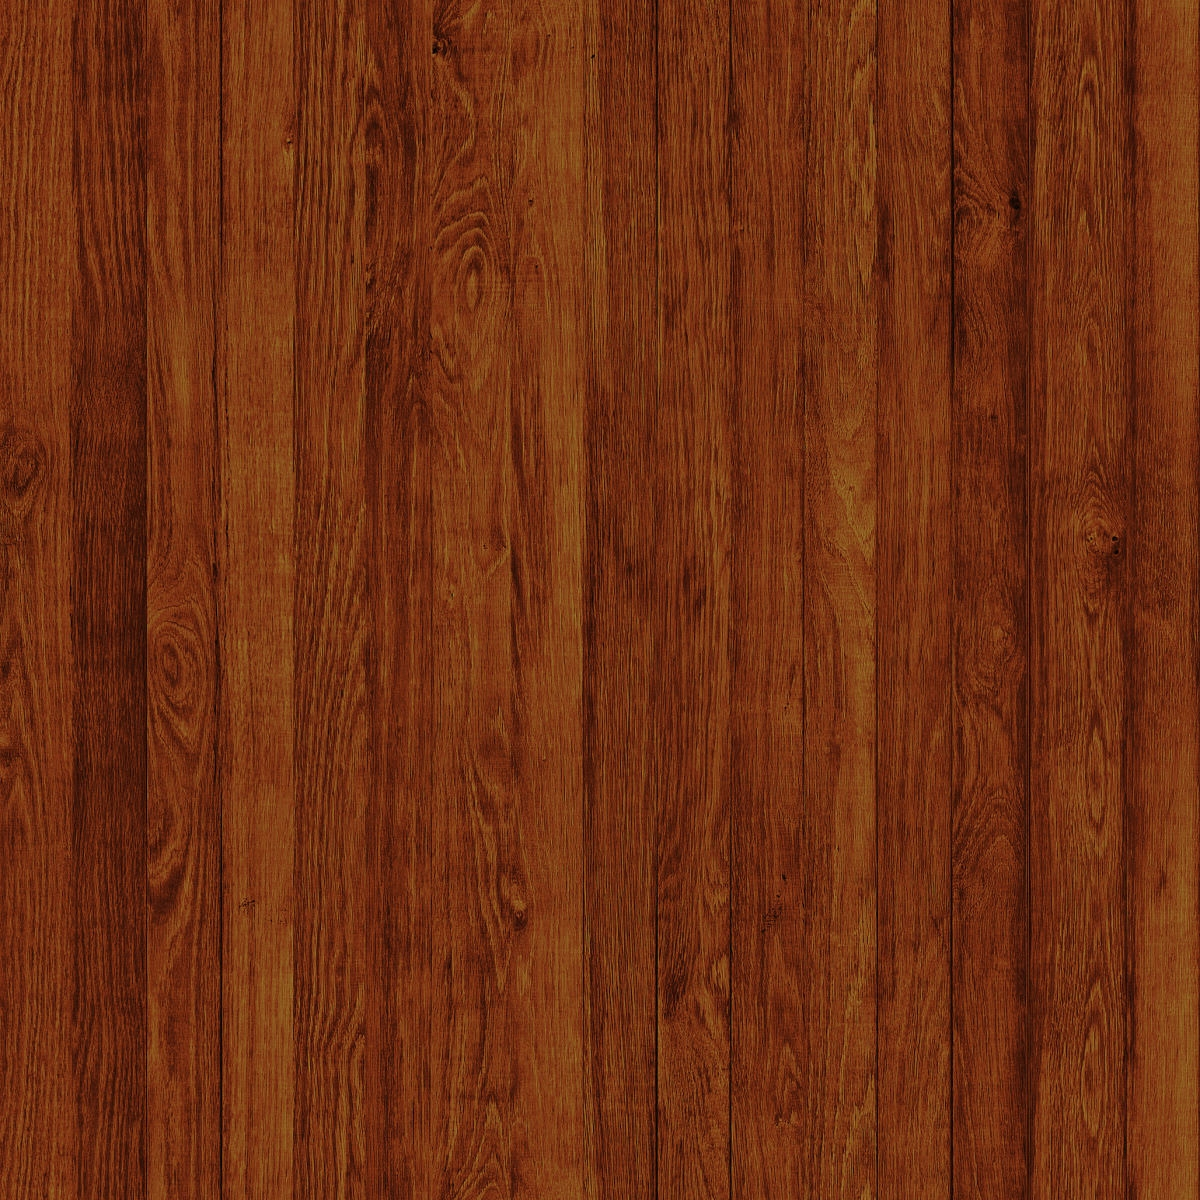 High Res Vertical Wooden Floor Texture Background